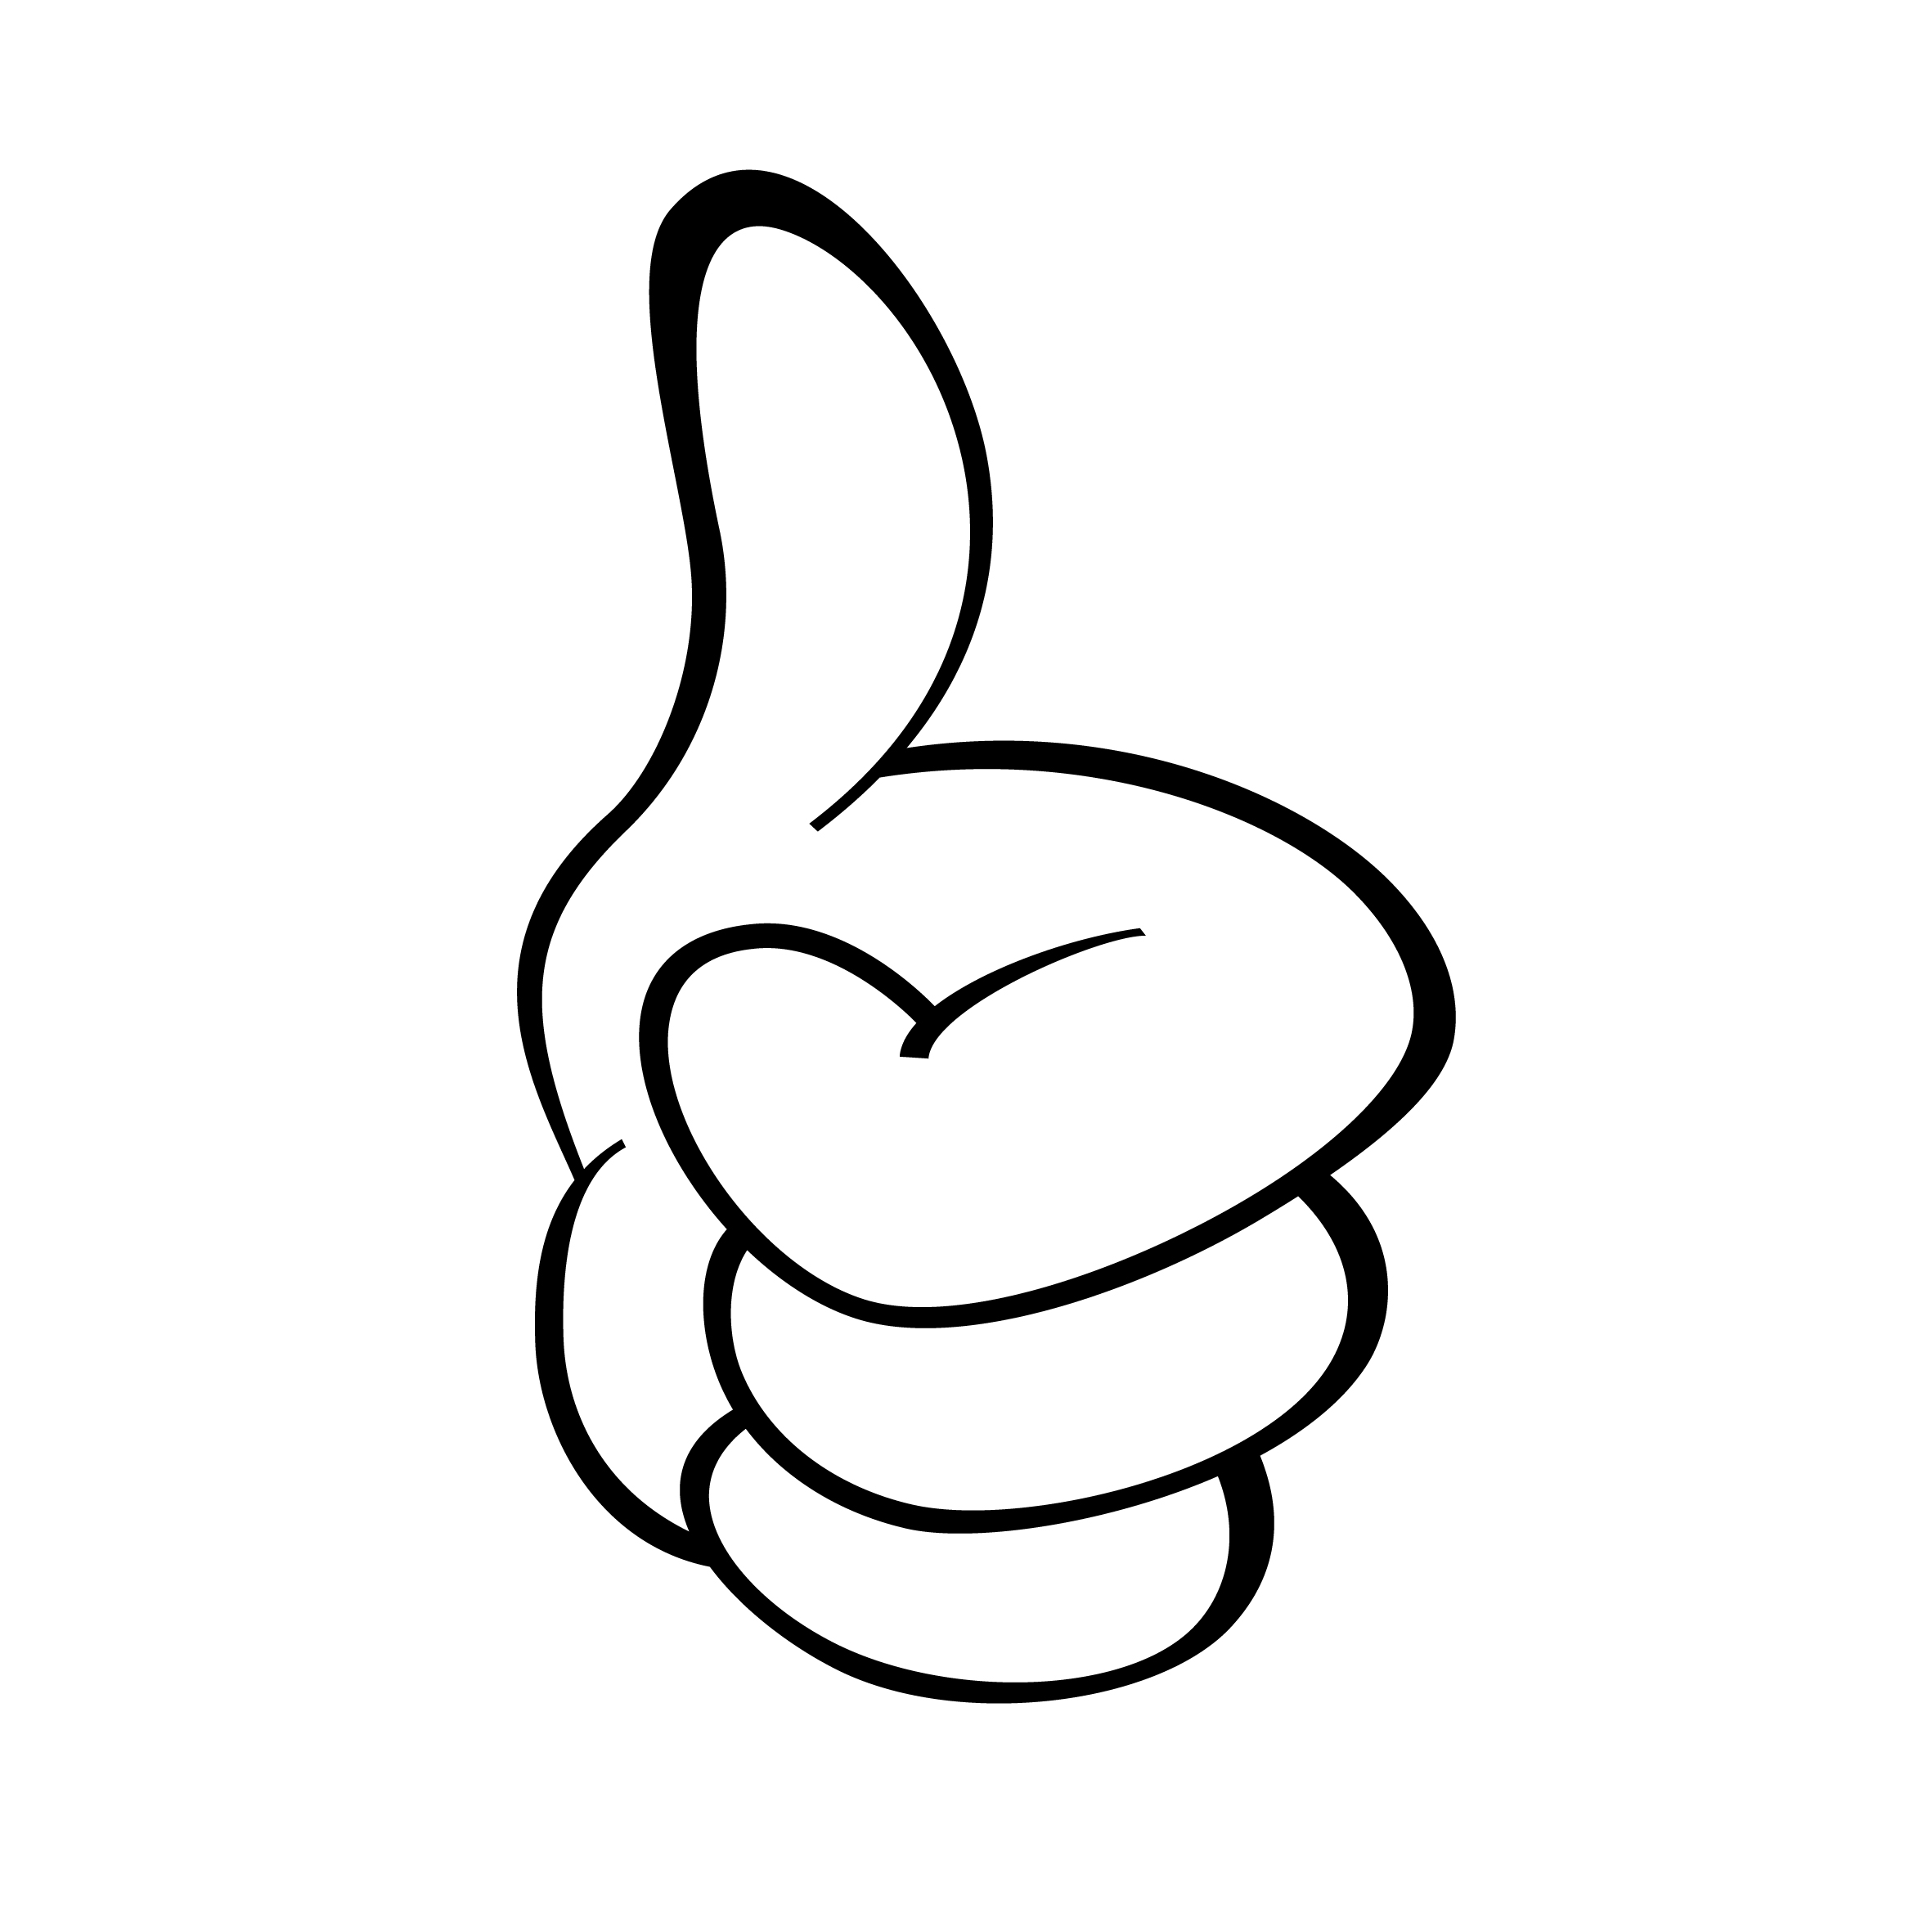 2 thumbs clipart graphic black and white stock Two Thumbs Up Pic | Free download best Two Thumbs Up Pic on ... graphic black and white stock